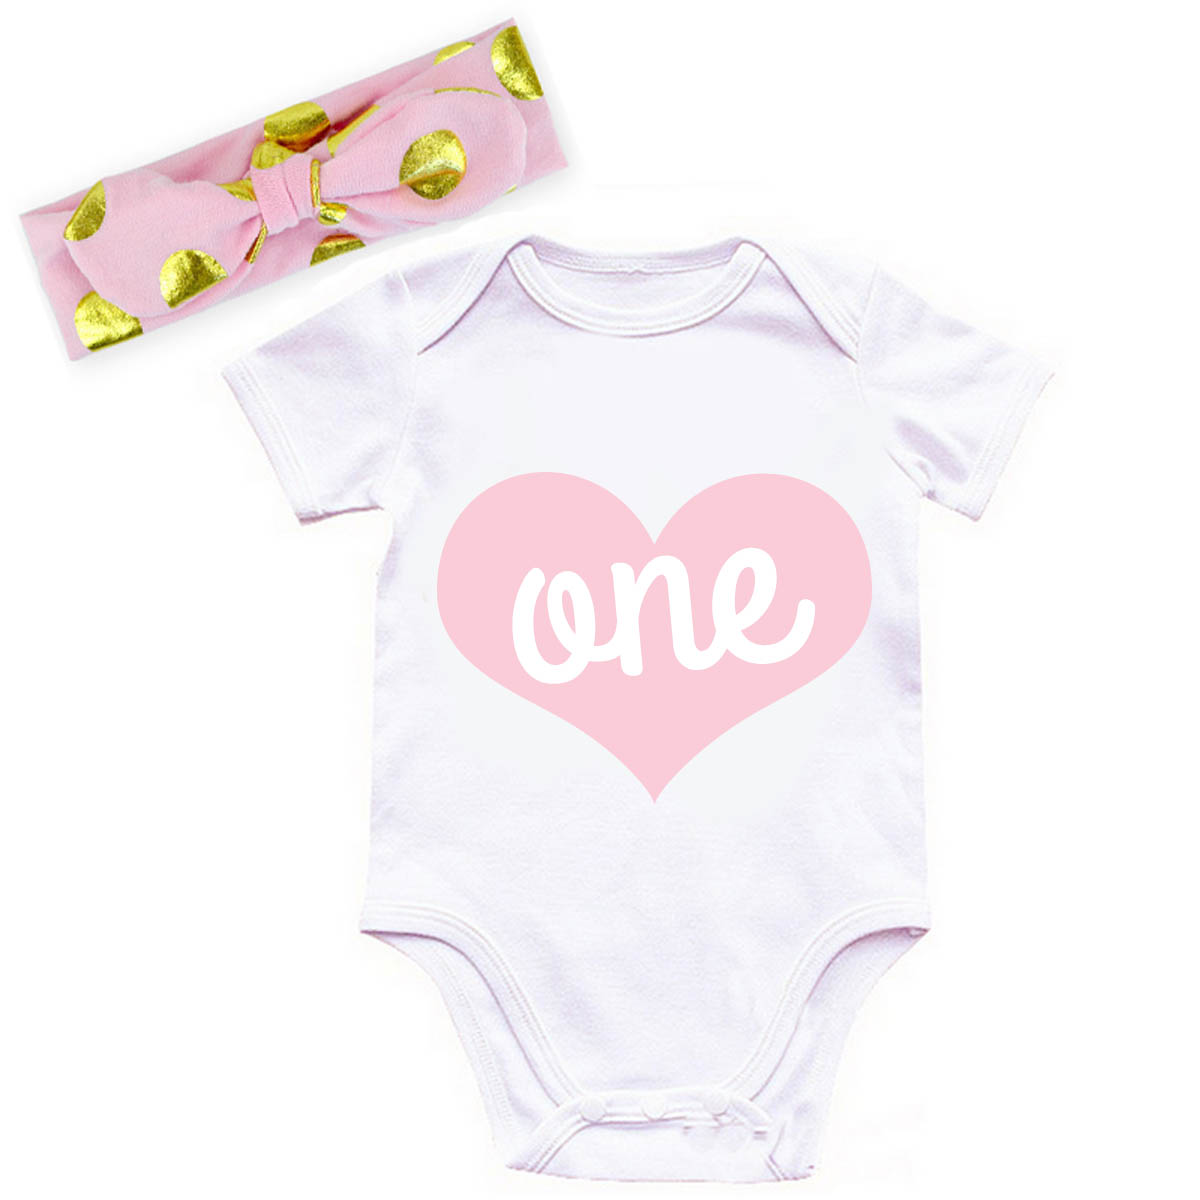 c532419ae Pink and Gold One Year Old Shirt or Outfit For 1st Birthday